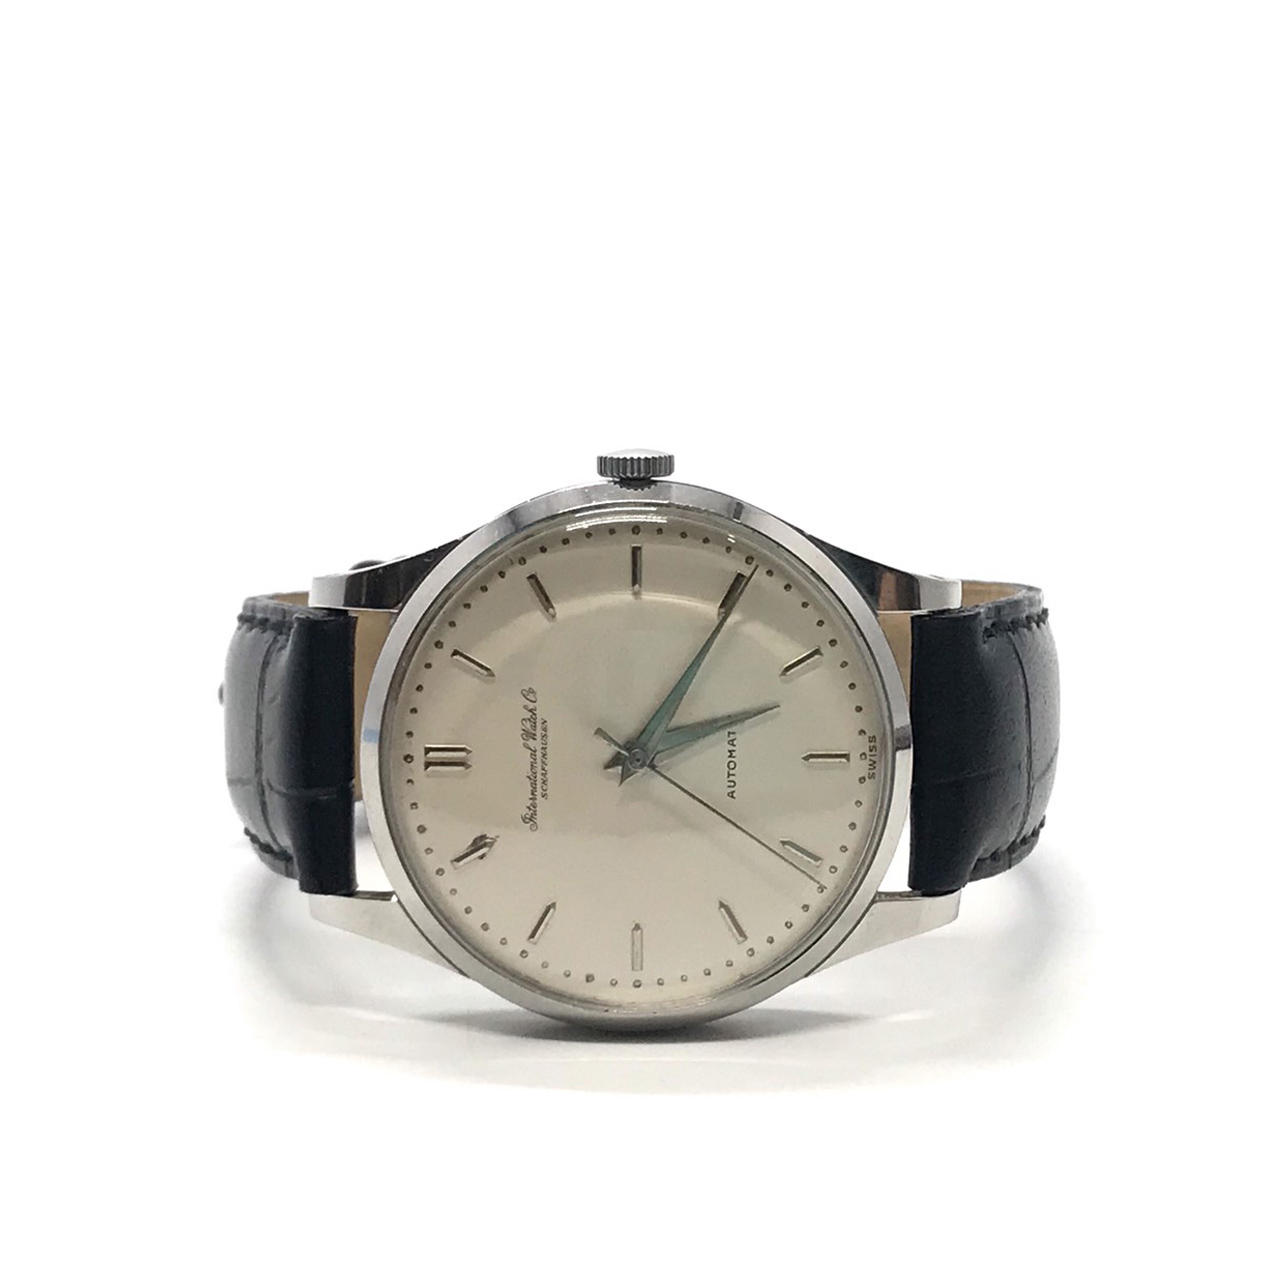 Used IWC Vintage Automatic Caliber 35 MM In Cream Dial SHW